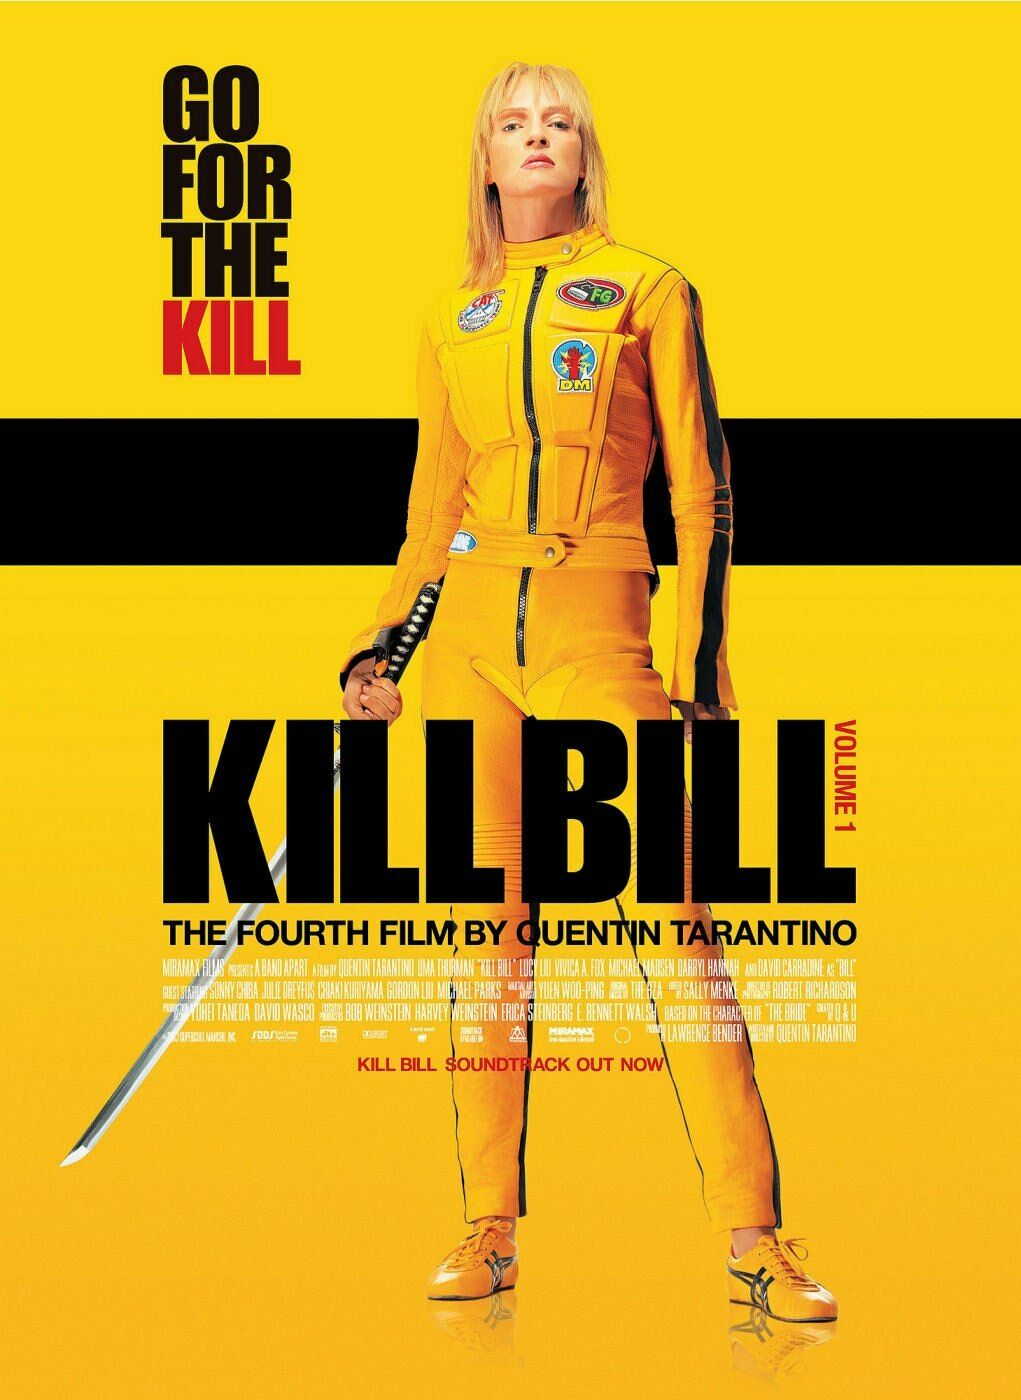 analysis of the kill bill poster Insert your face in kill bill: vol 1 (2003) movie poster photo upload your photo, move, resize and rotate it to fit in the hole view and download the final image.